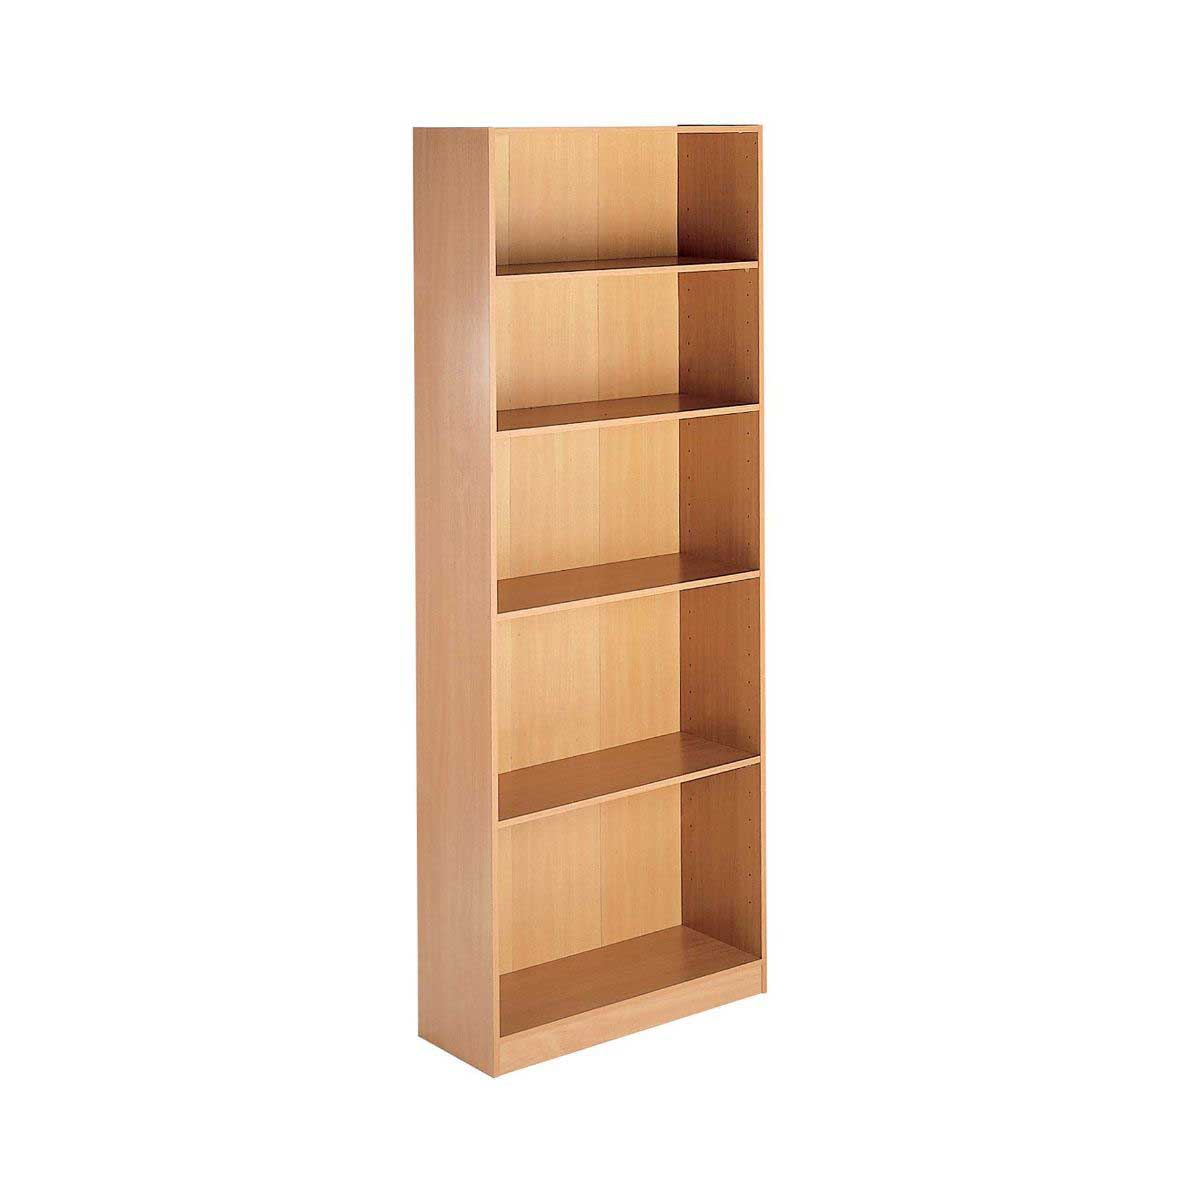 Maestro Tall Bookcase 5 Shelf Open, Oak Effect